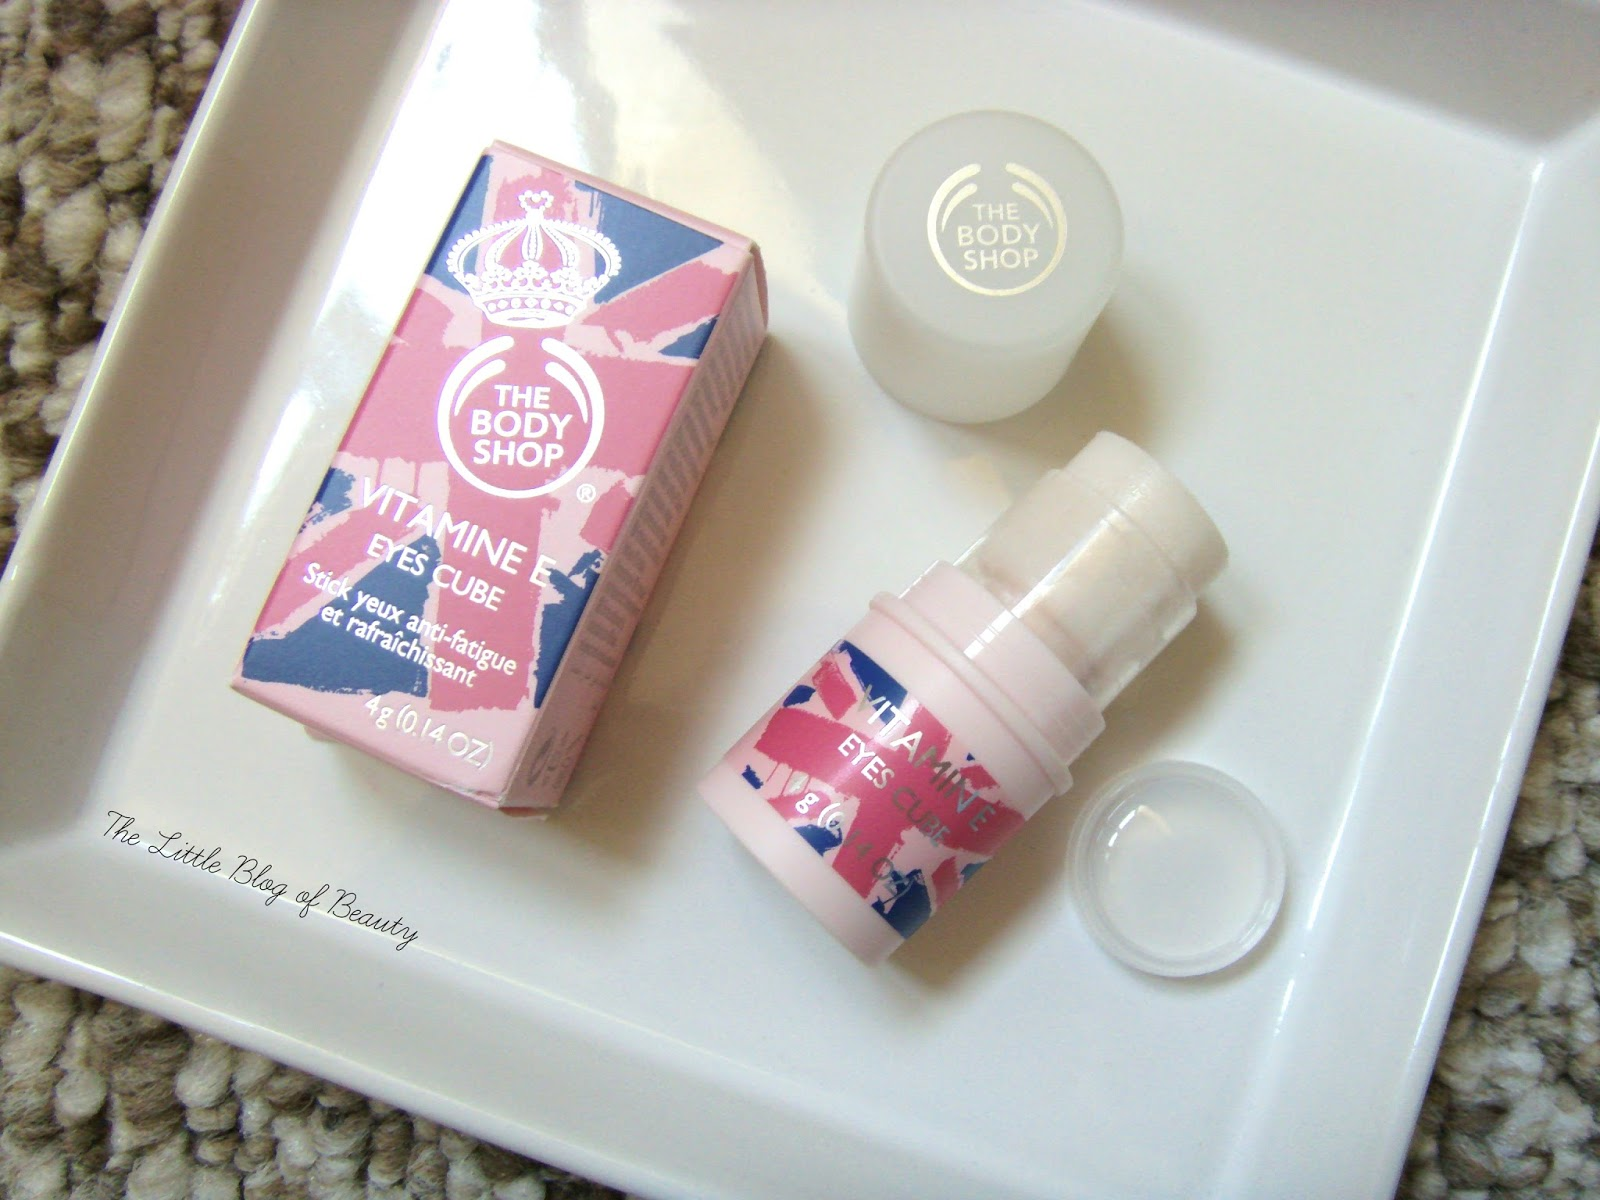 The Body Shop Limited edition Mothers day Vitamin E products